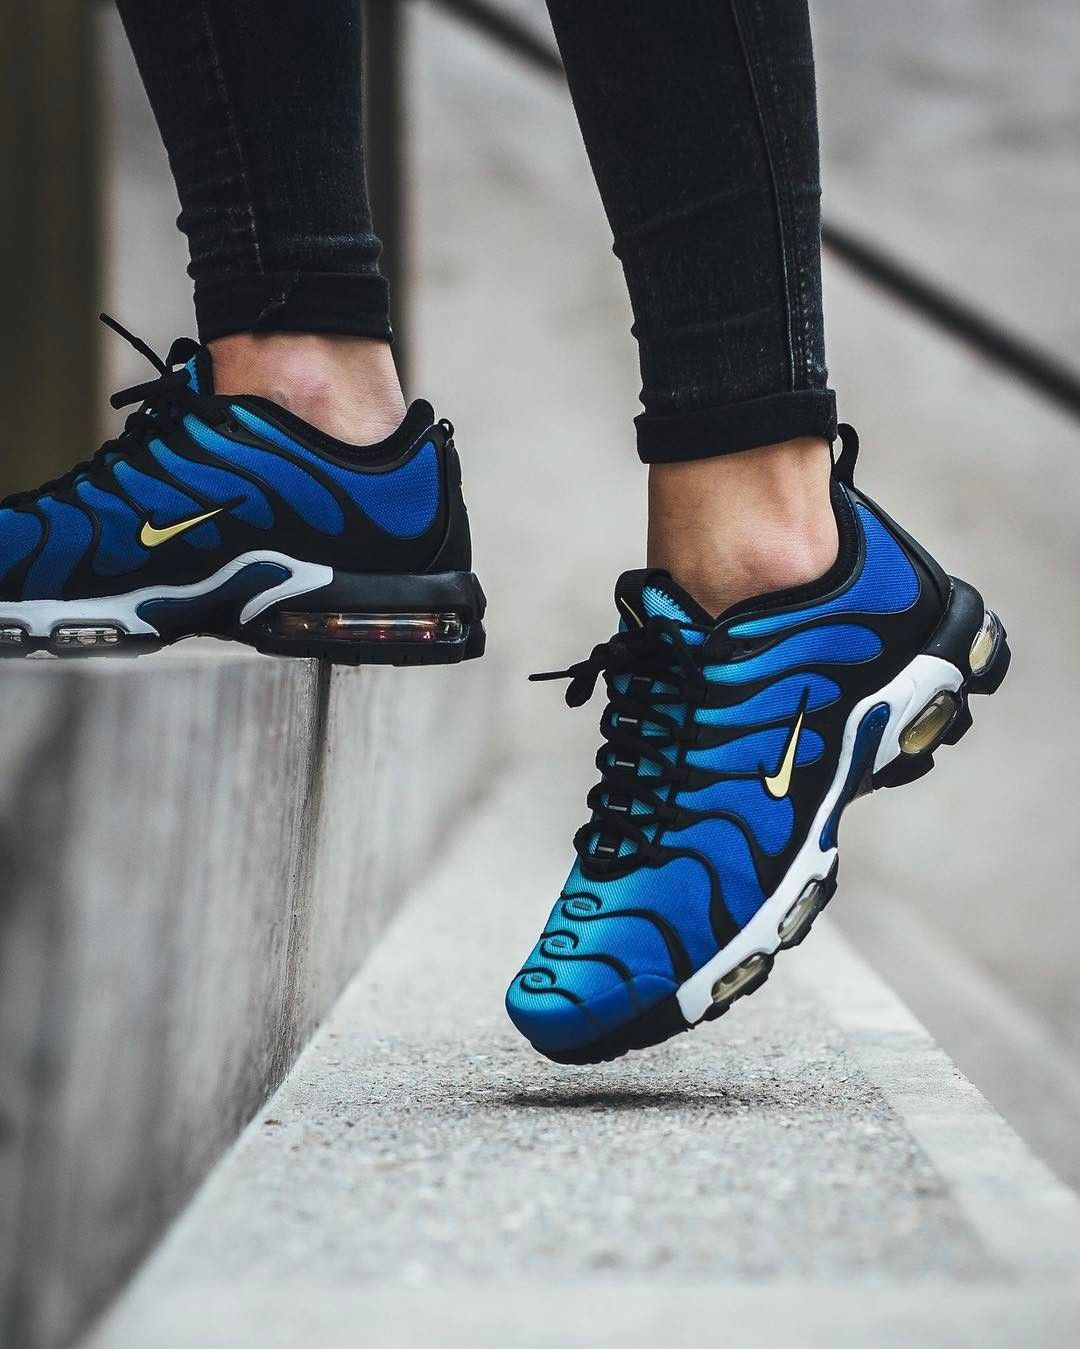 Nike Air Max TN x Ultra Hyper Blue | Nike Air Max in 2019